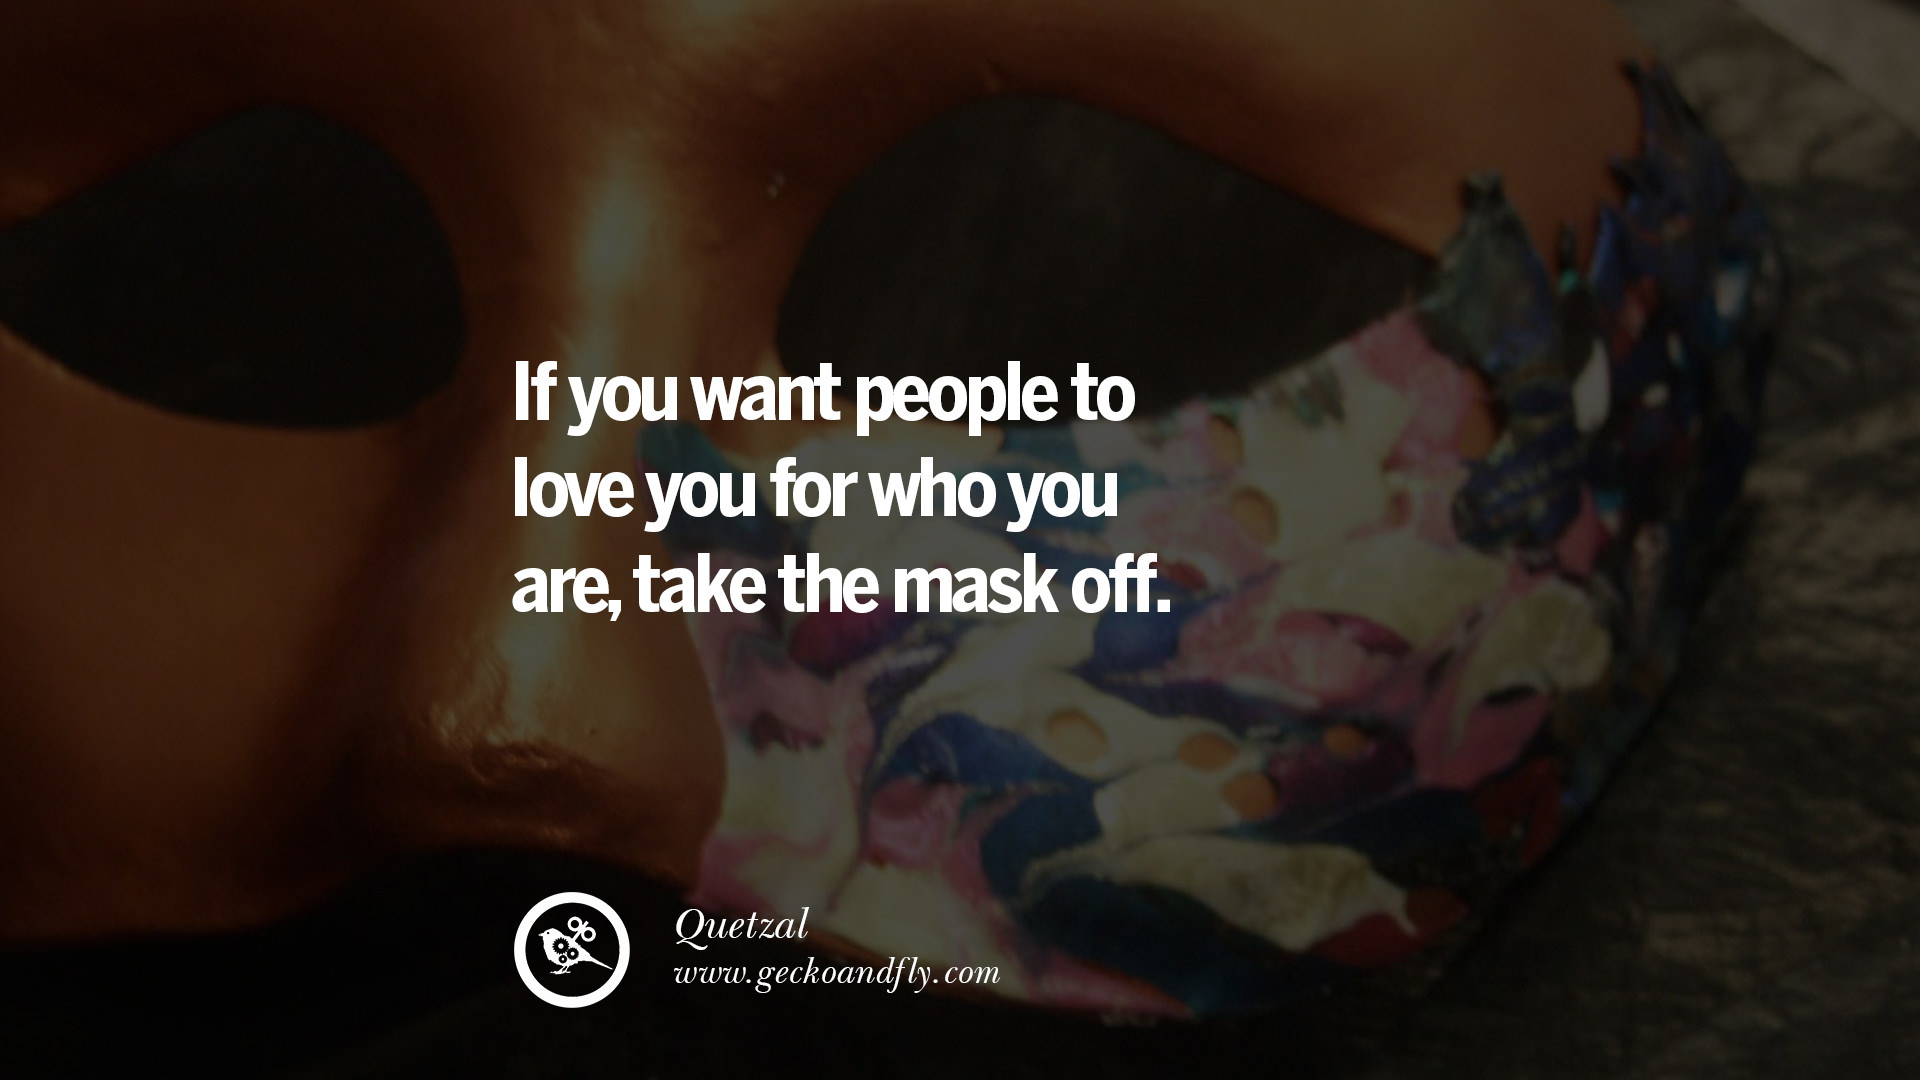 e11c91e4bcfb8 If you want people to love you for who you are